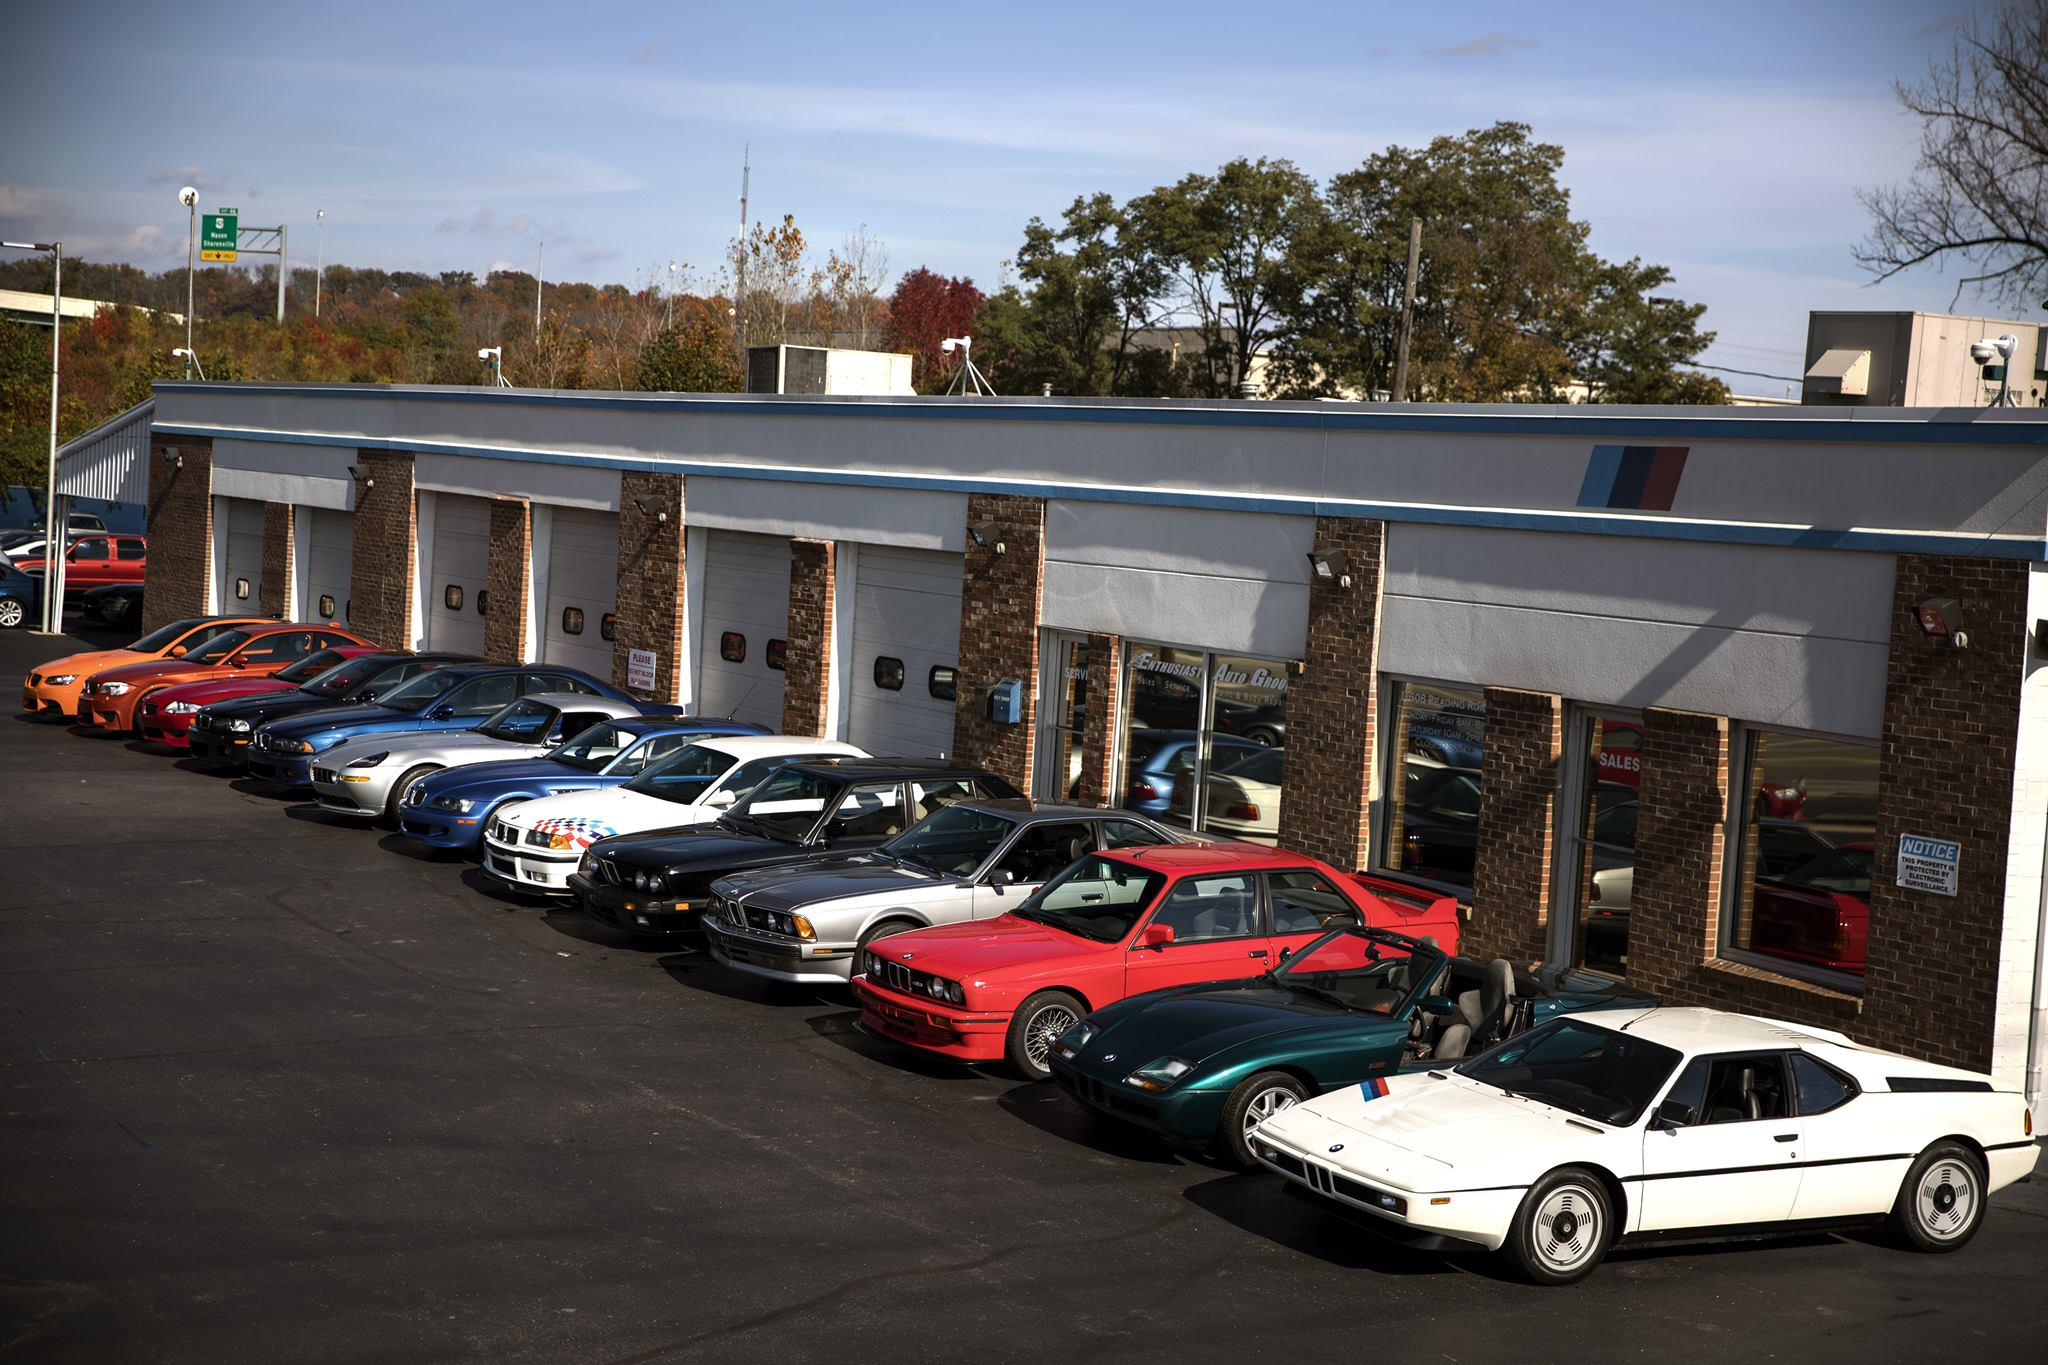 Paging all BMW fans: You're going to want to see this collection.   Enthusiast Auto Group photos